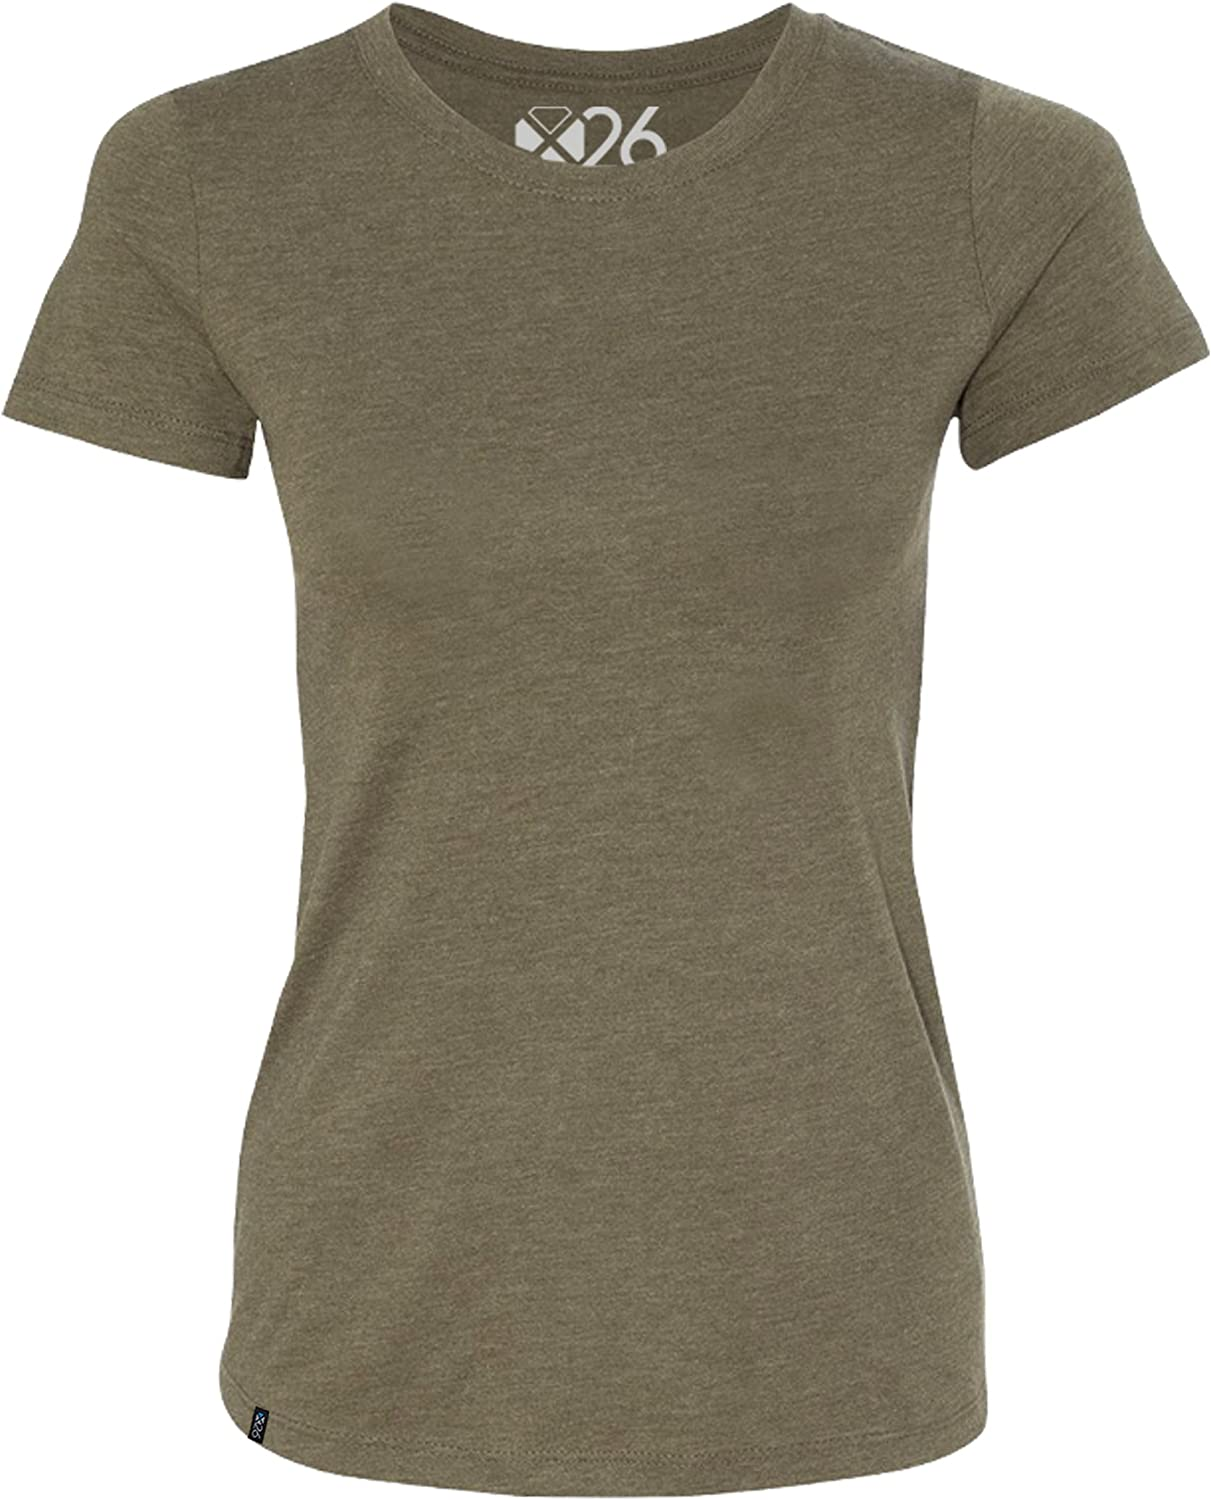 Women's Tri-Blend Soft Wash Jersey Crew Neck Everyday Plain and Heather T-Shirts